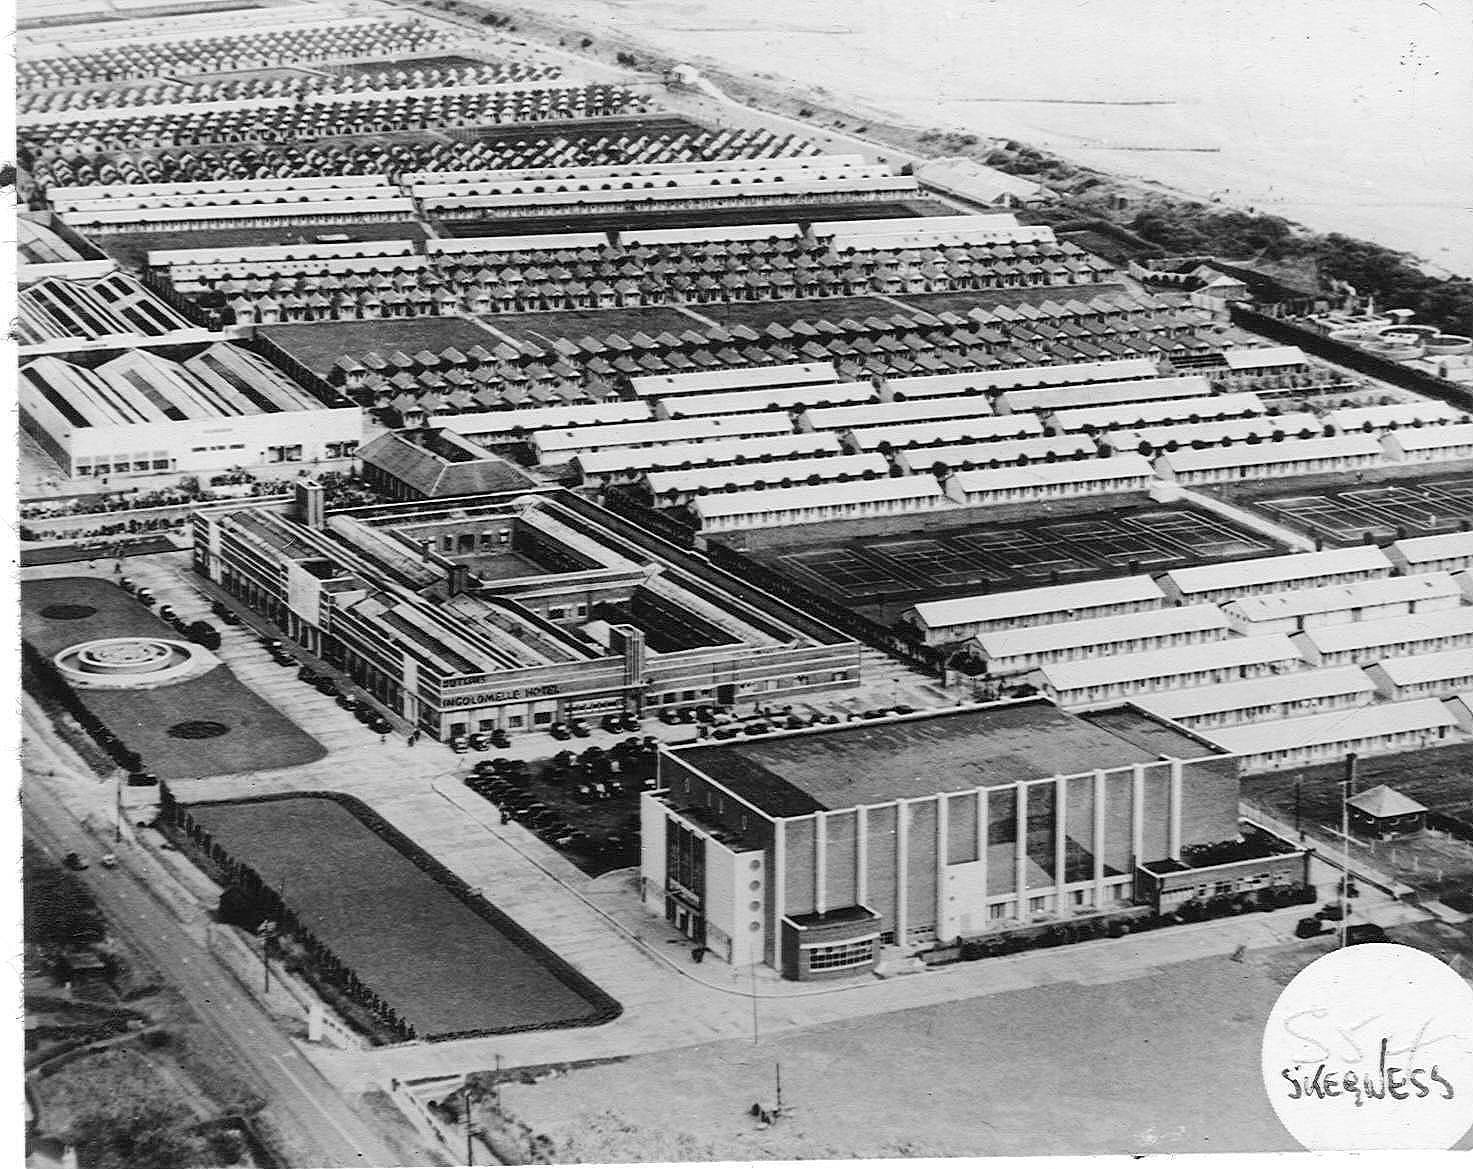 Aerial view of the Skegness Butlin's.